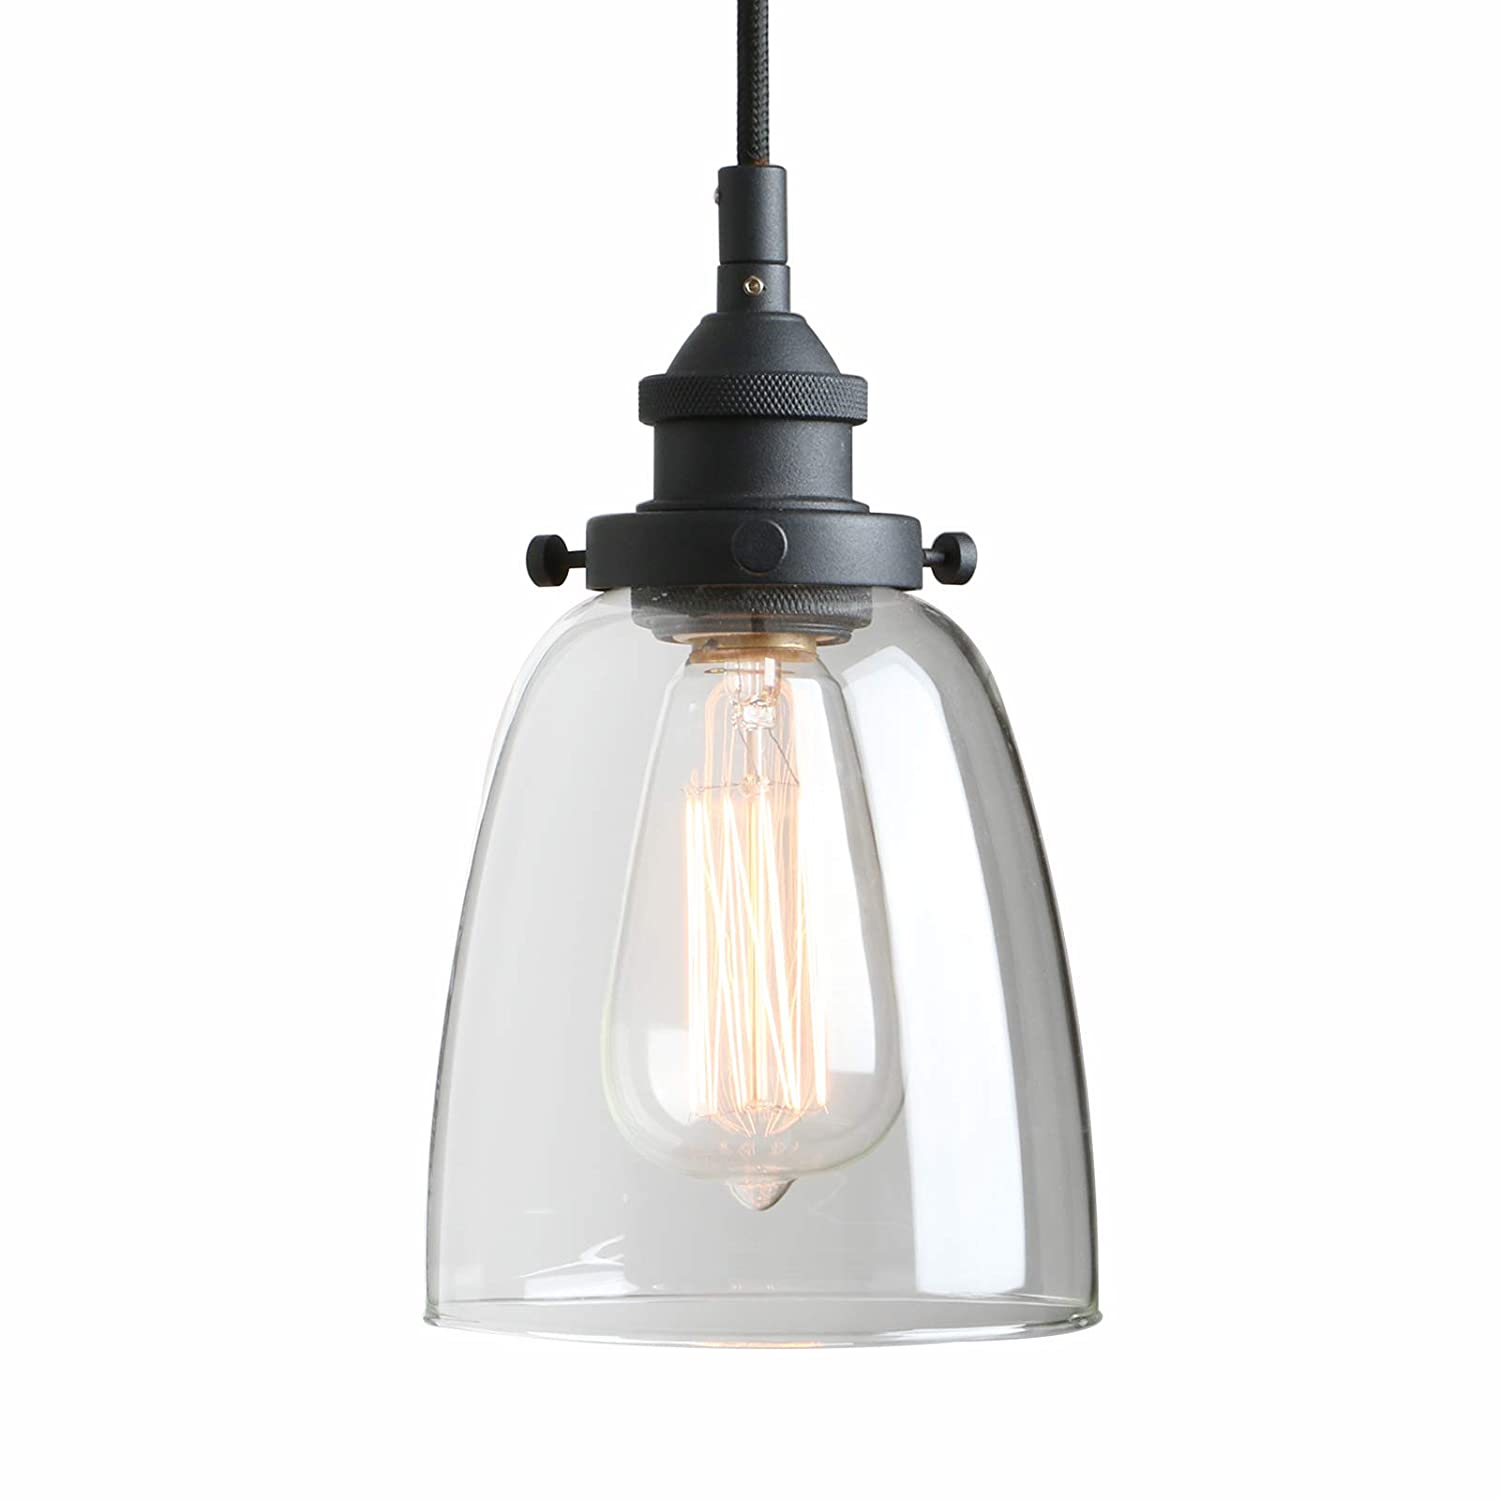 Pathson Retro Pendant Lighting Industrial Small Hanging Light With Wire That Is In The Ceiling From Switch Now To Rose Clear Glass And Textile Cord Adjustable Kitchen Lamp For Hotels Hallway Shops Cafe Bar